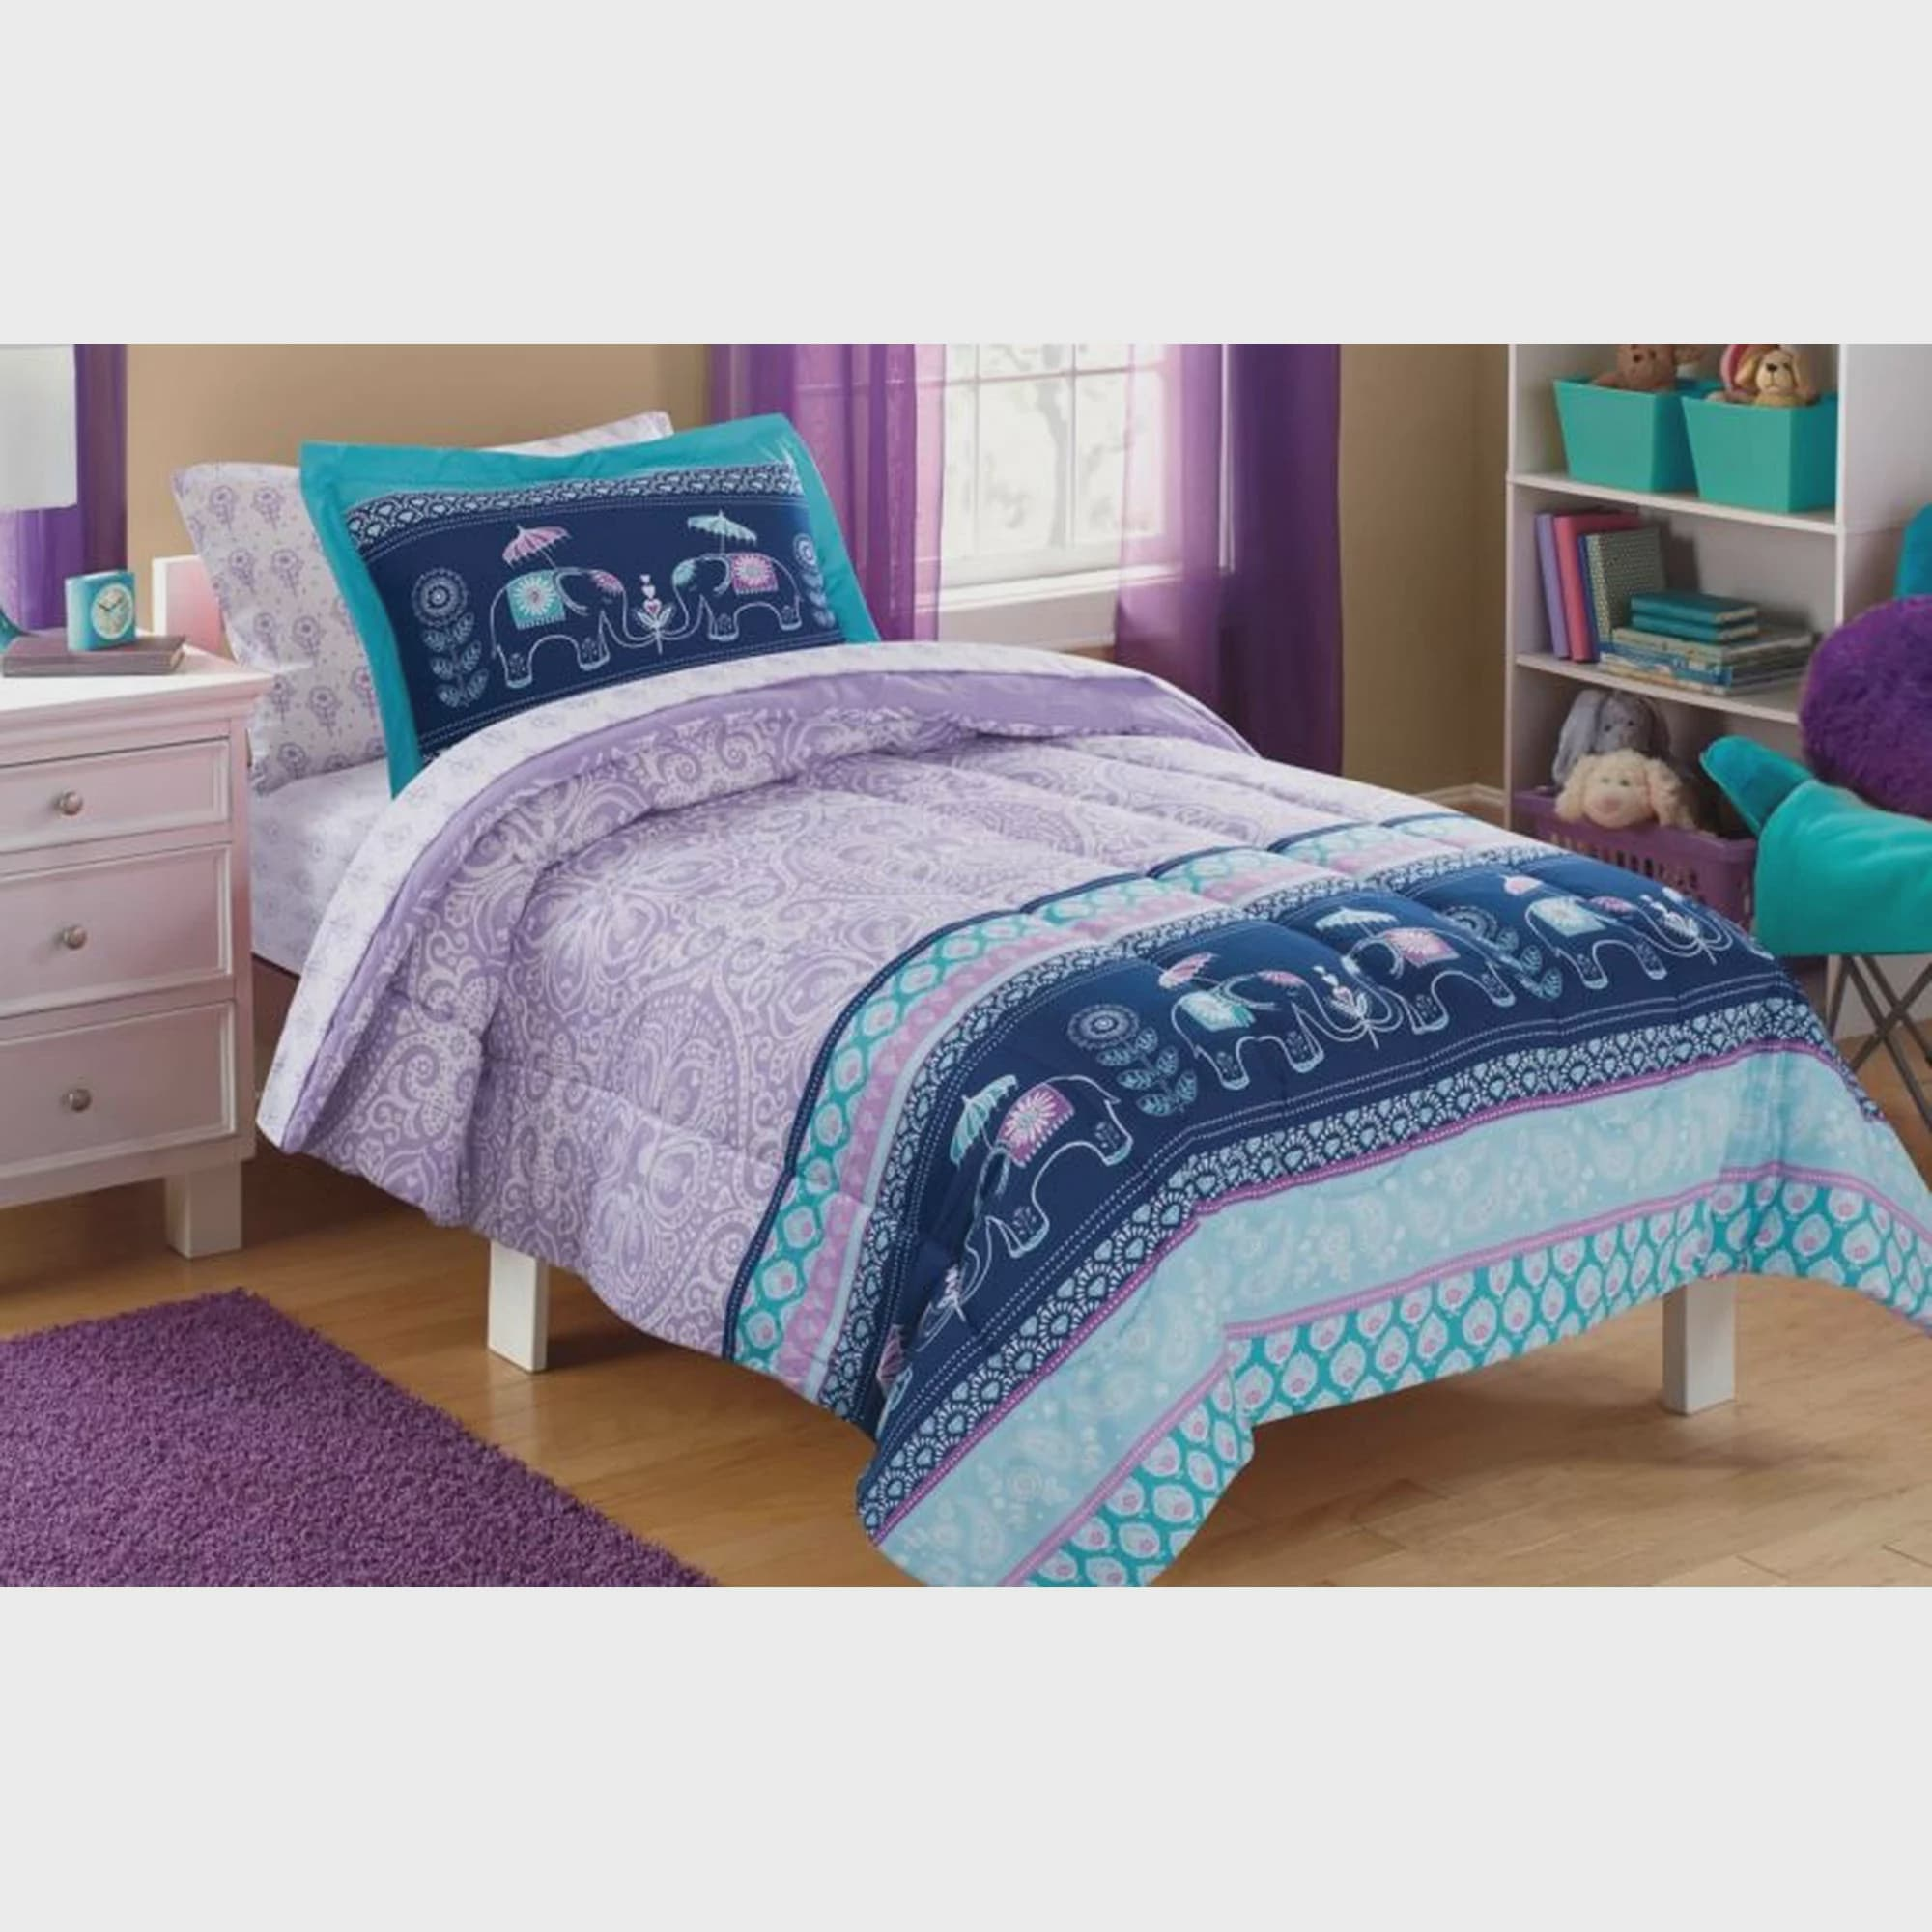 Mainstays Kids Elle Boho Bed in a Bag Complete Bedding Set by Keeco